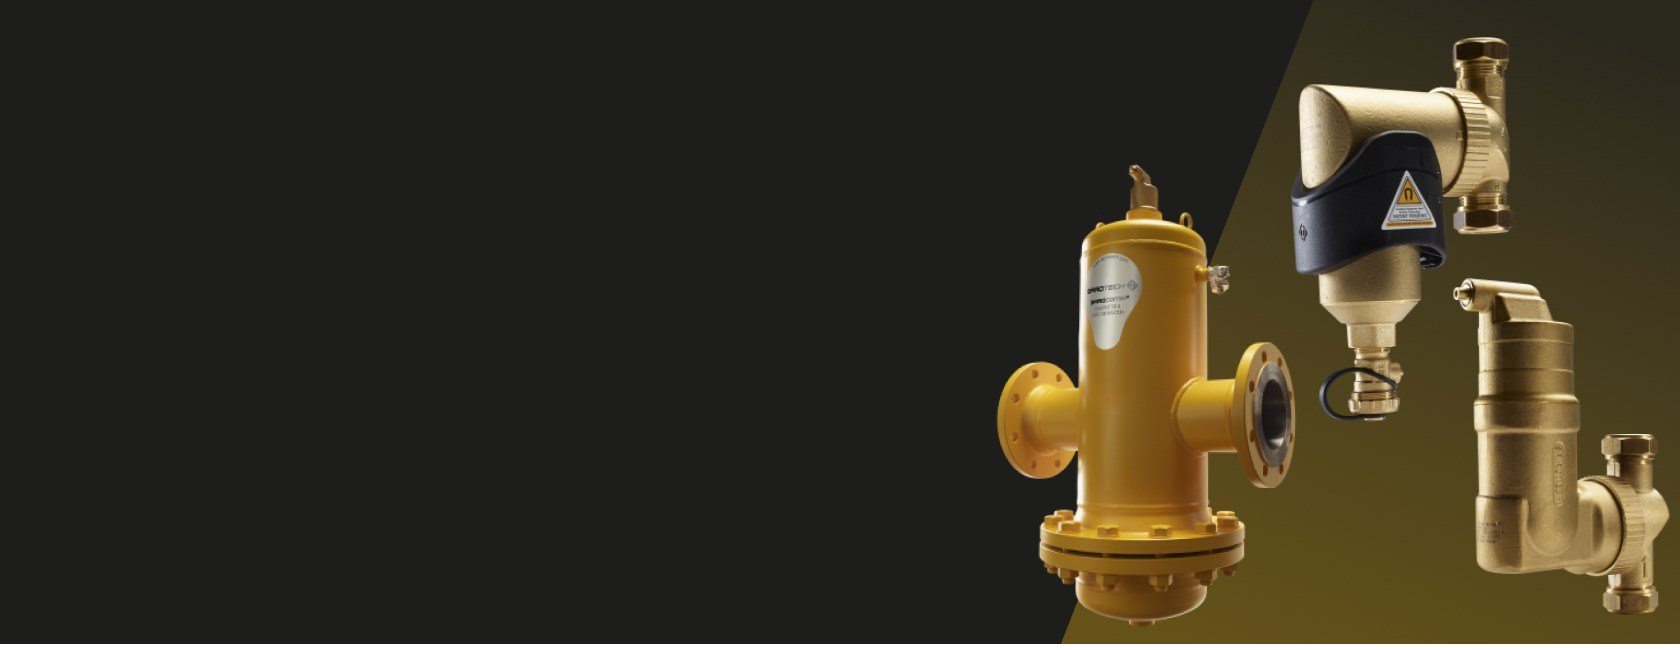 Spirotech BV - The expert in System Water Quality - Spirotech